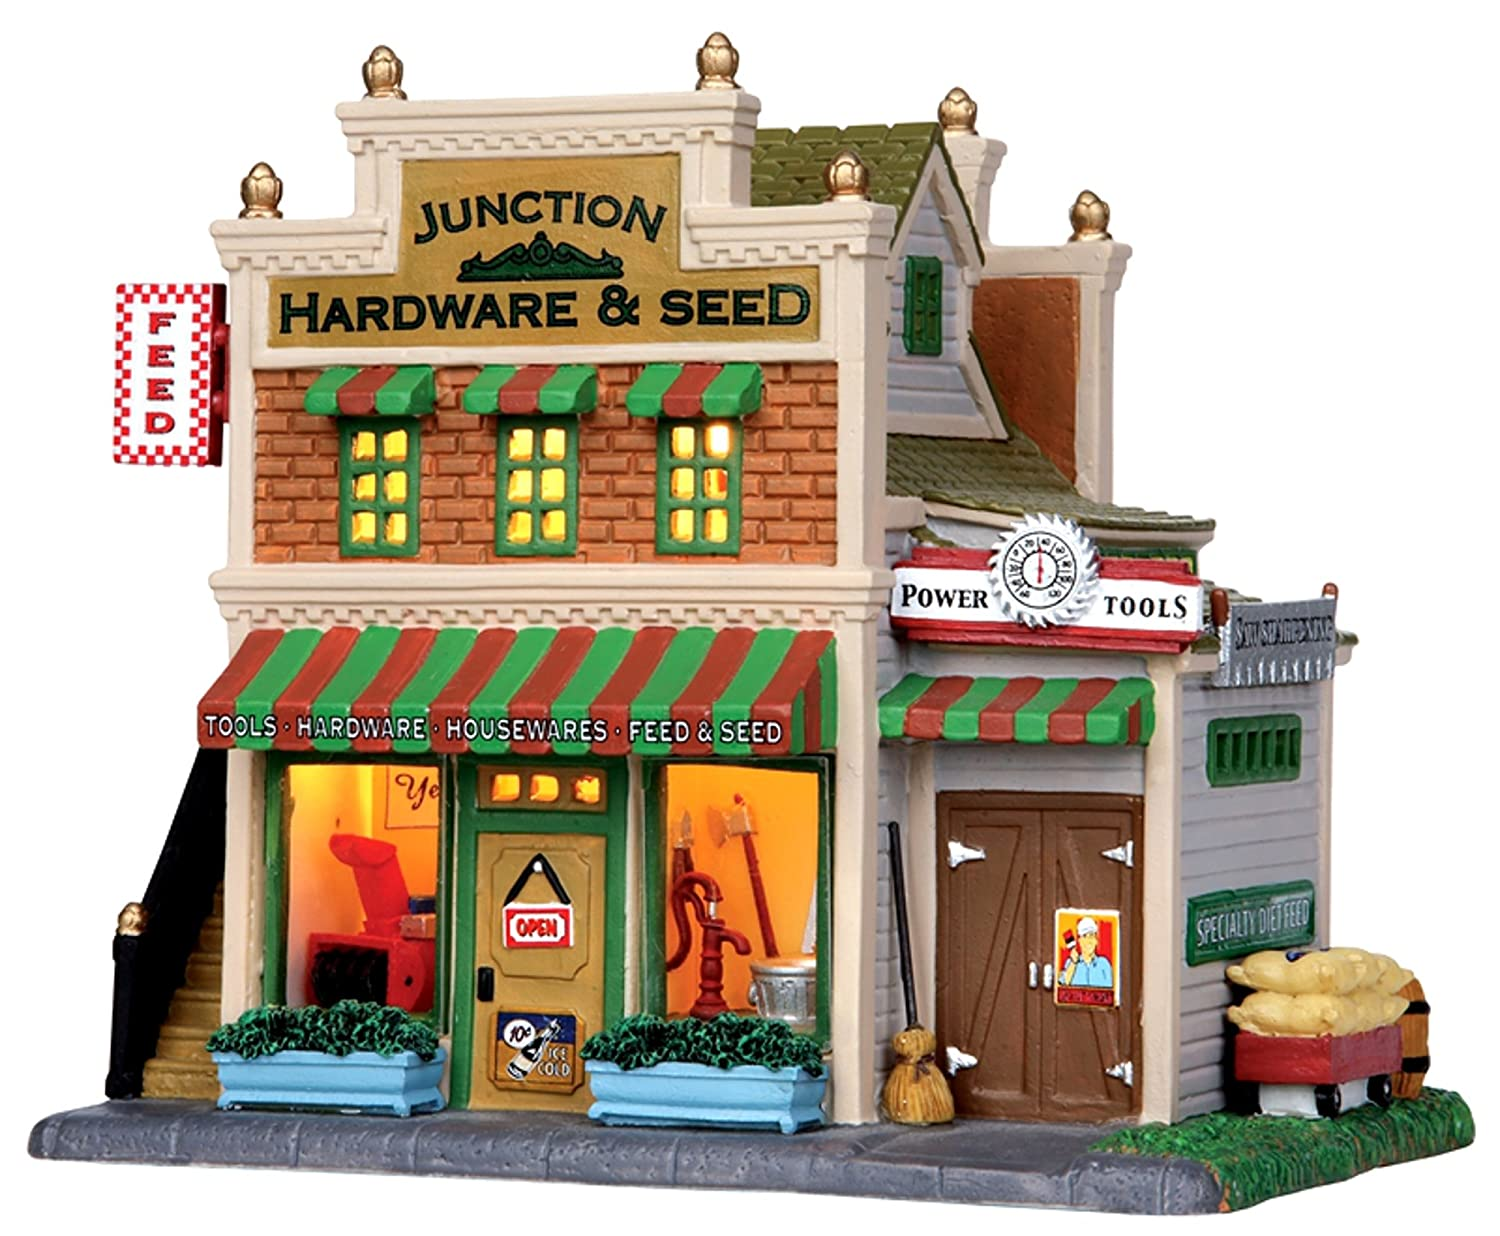 Lemax 15266 JUNCTION HARDWARE & SEED Harvest Crossing Building Christmas Decor